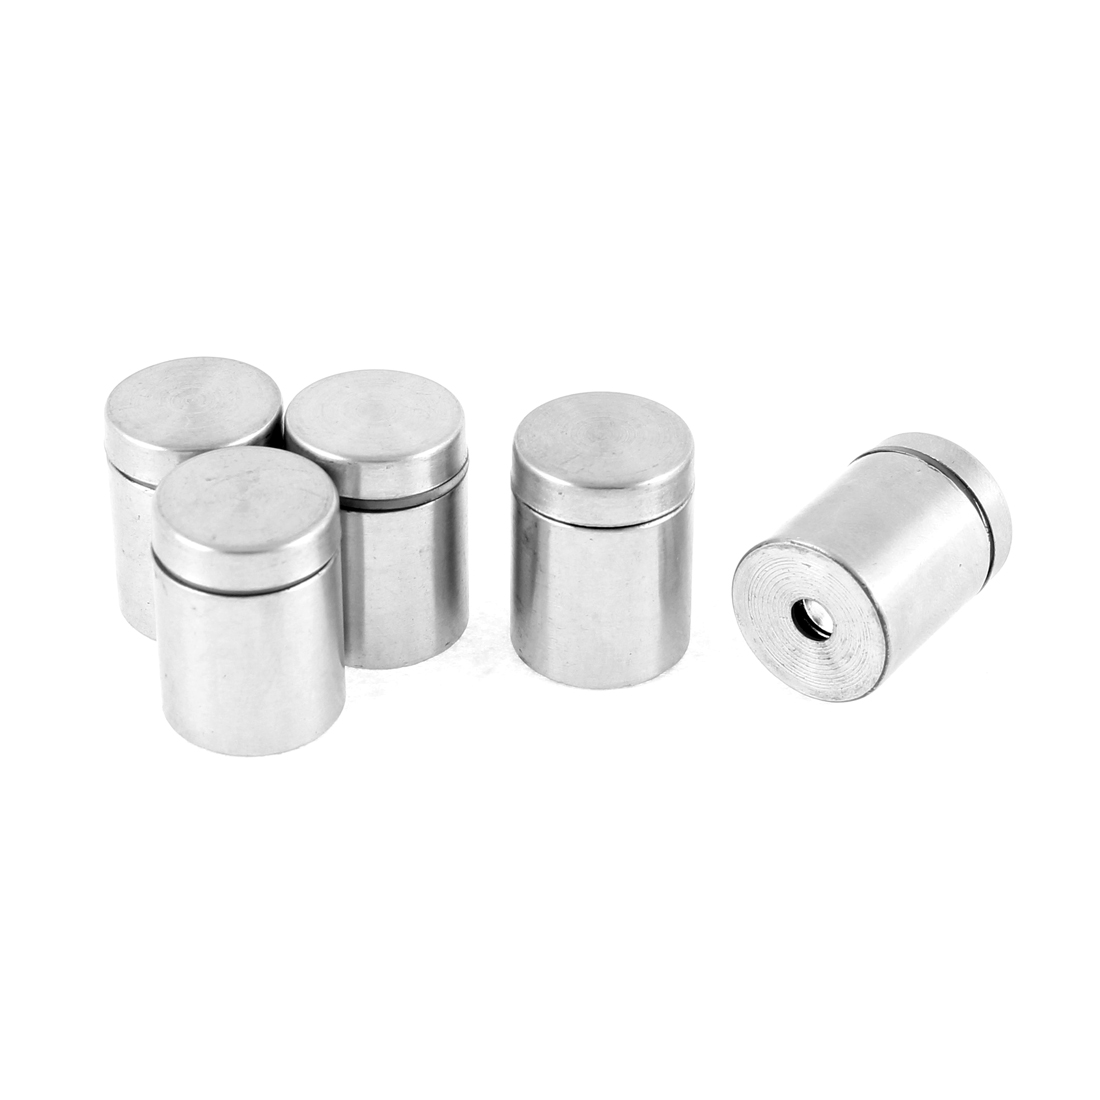 19mm x 25mm Stainless Steel Glass Standoff Hardware Silver Tone 5pcs